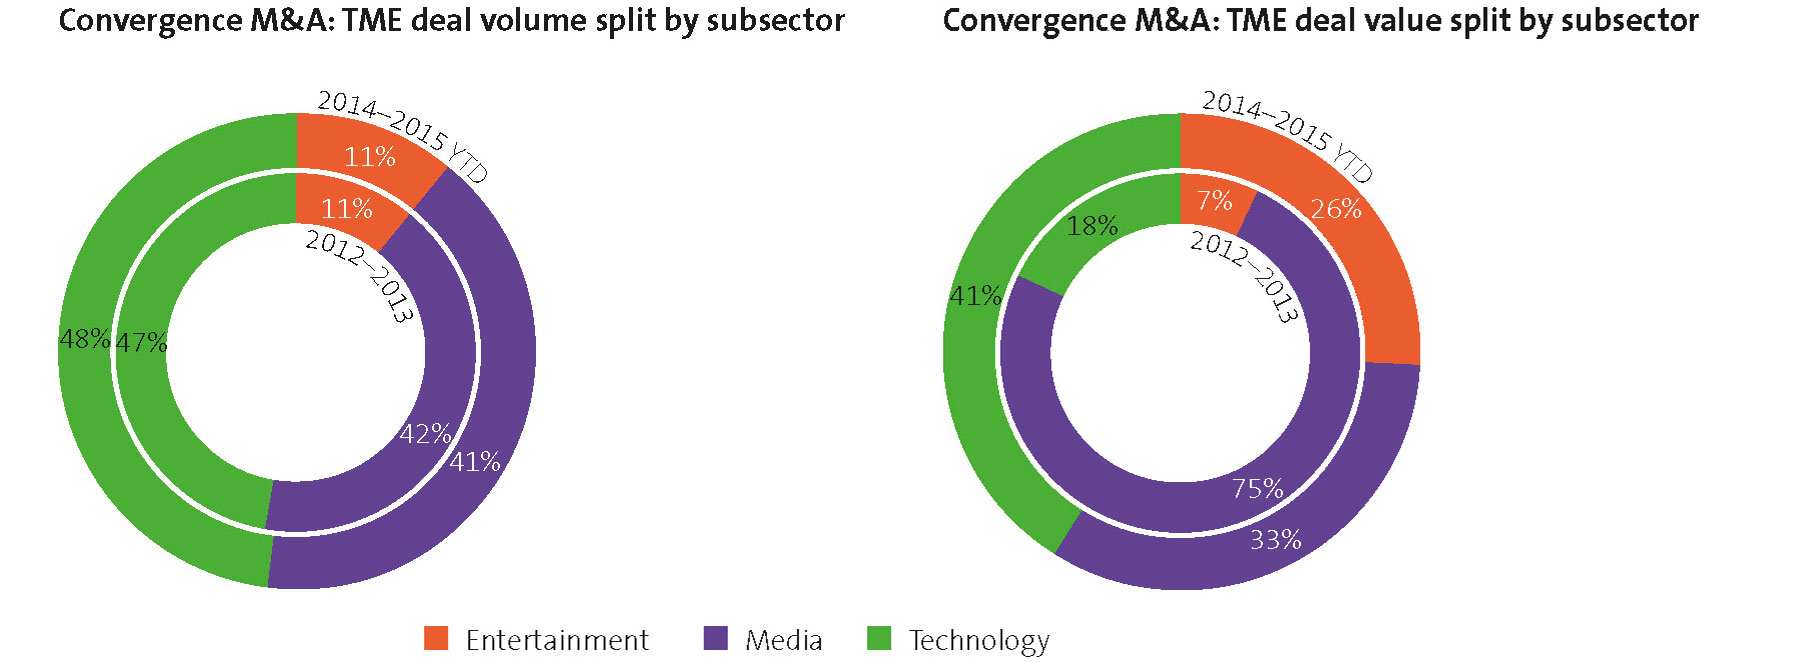 Convergence M&A volume and value